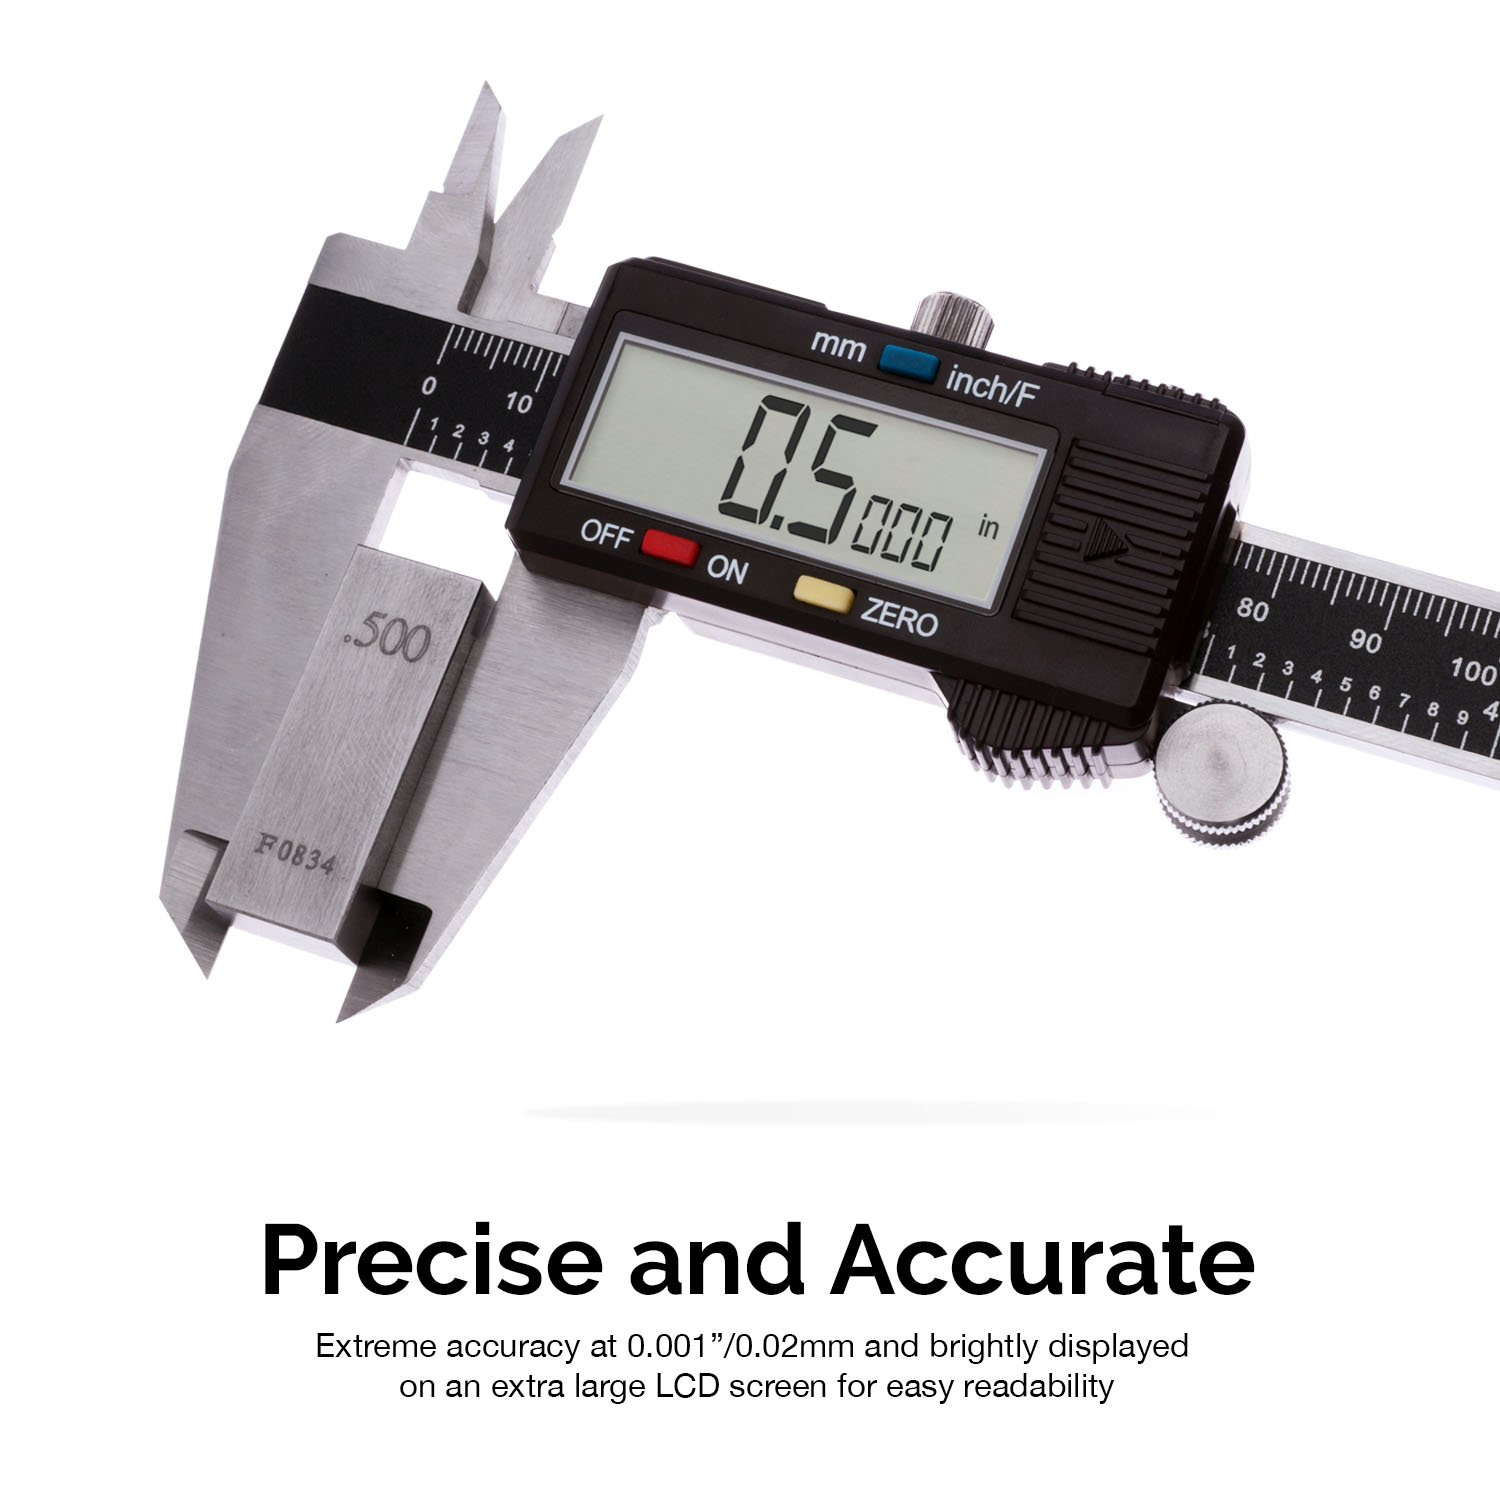 Inch//Fractions//Millimeter Conversion 0-6 Inches Neiko 01407A Electronic Digital Caliper Stainless Steel Body with Large LCD Screen